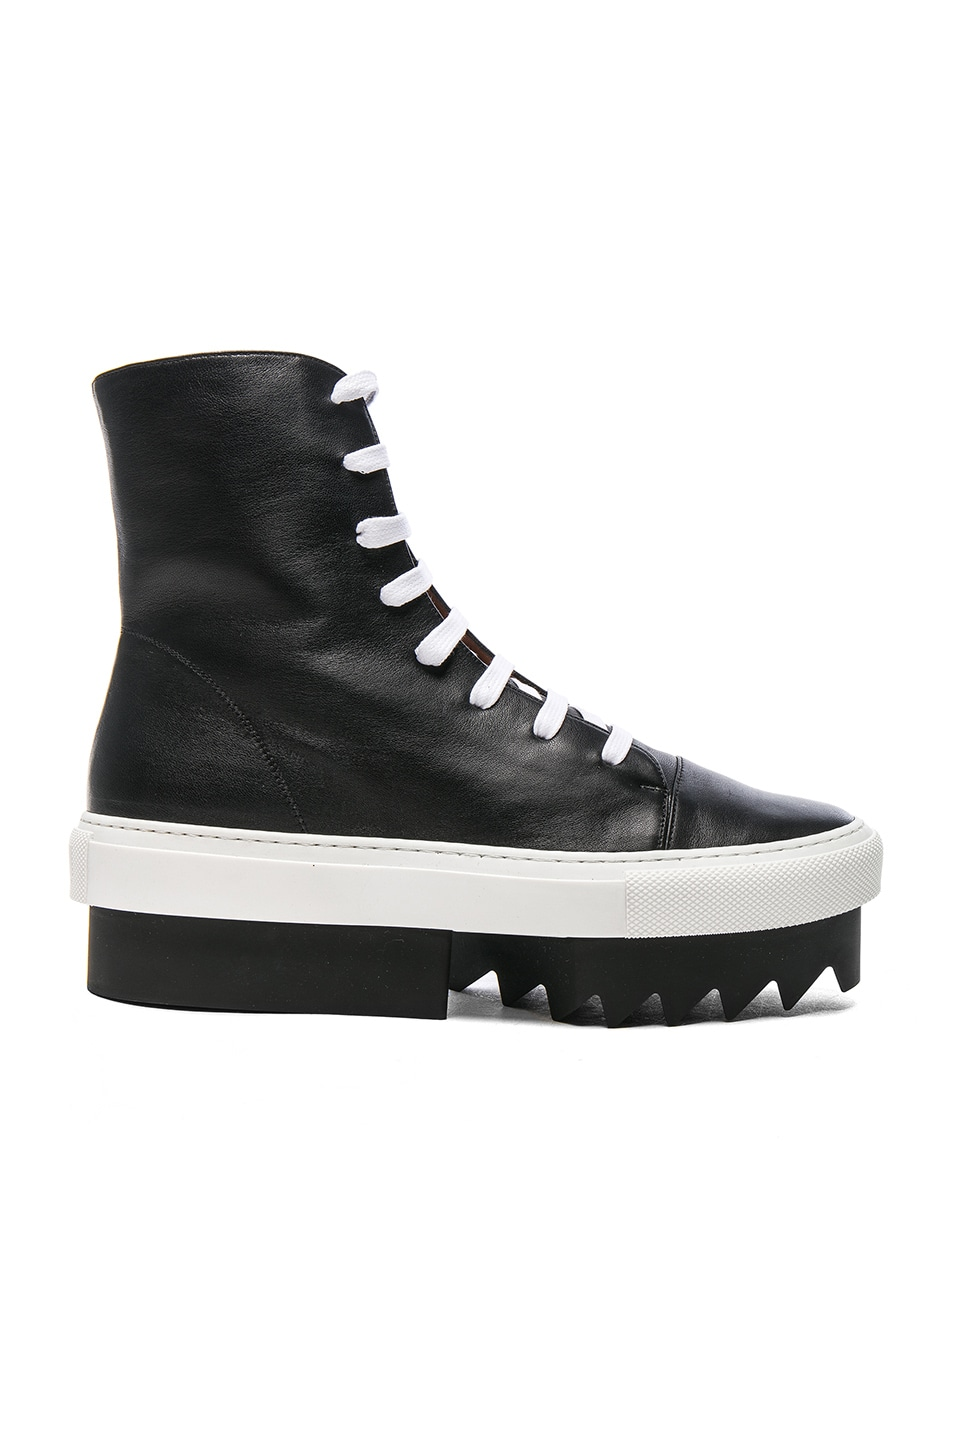 Image 1 of Givenchy Lace Up Platform Skate Sneaker in Black